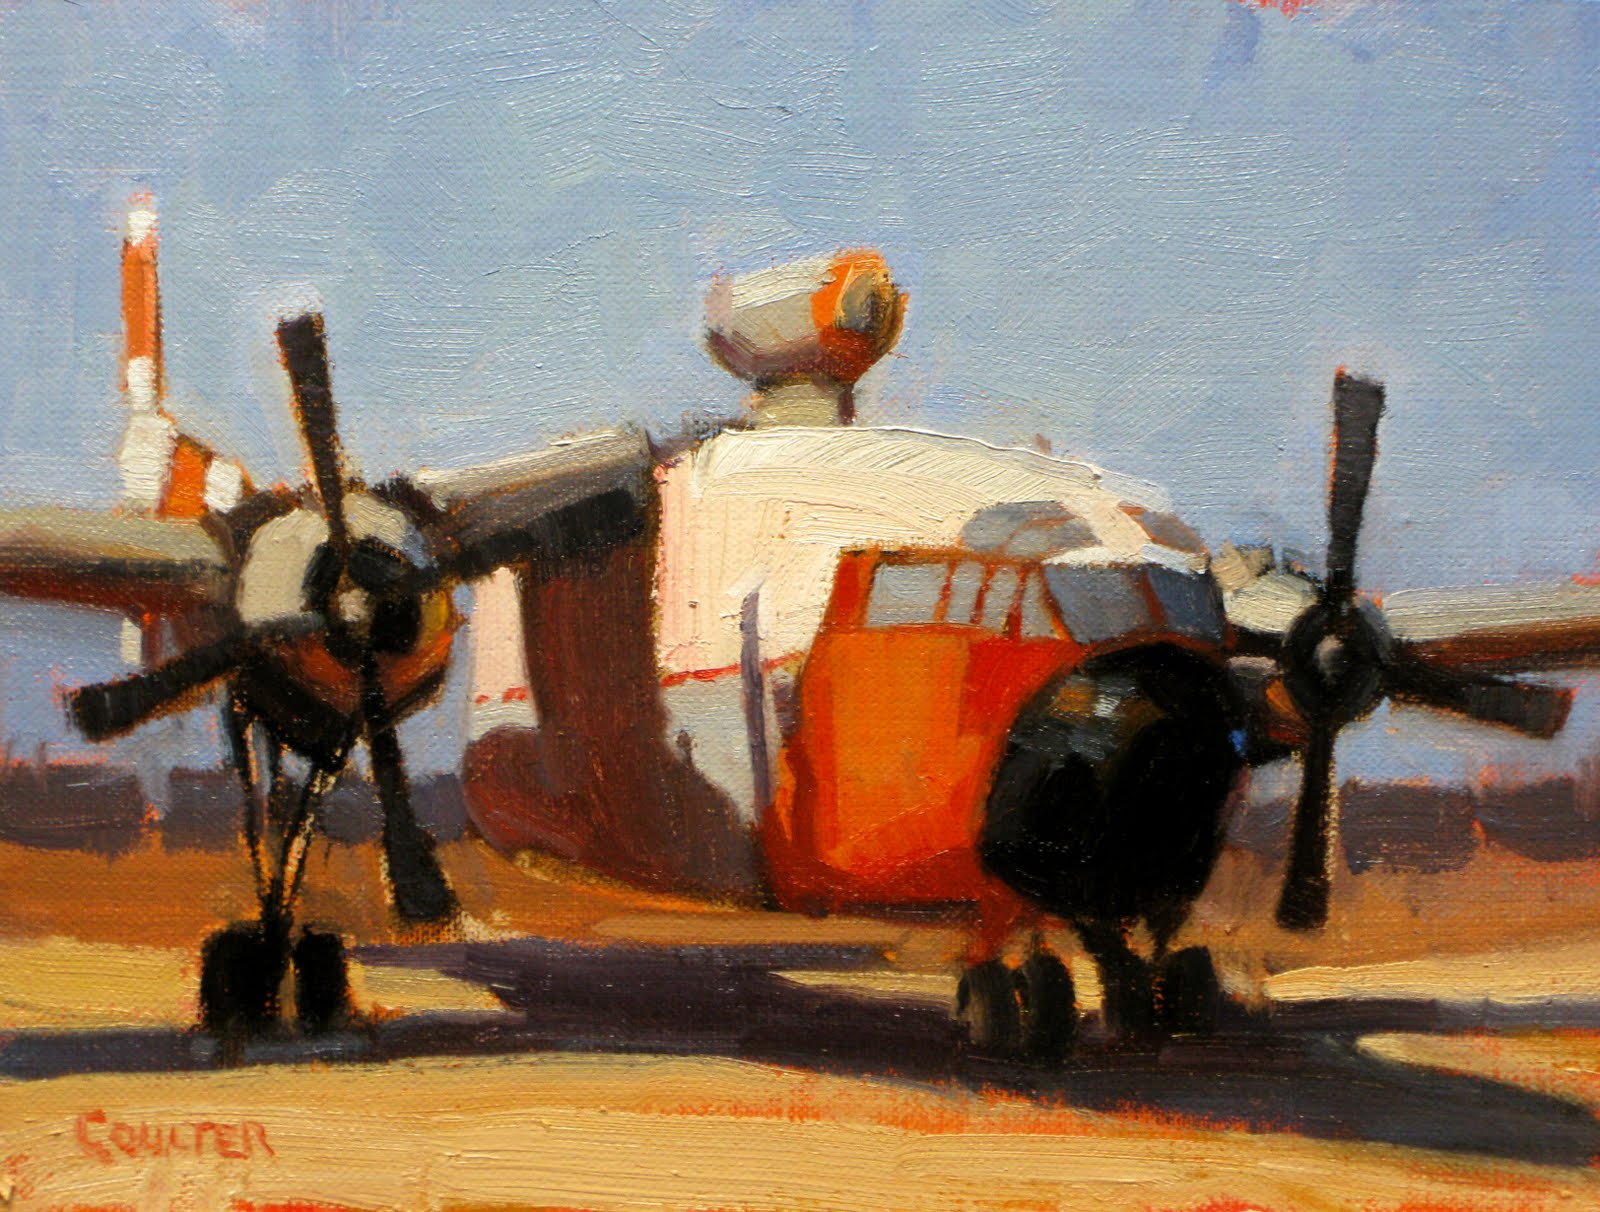 """ORANGE PLANE"" original fine art by James Coulter"